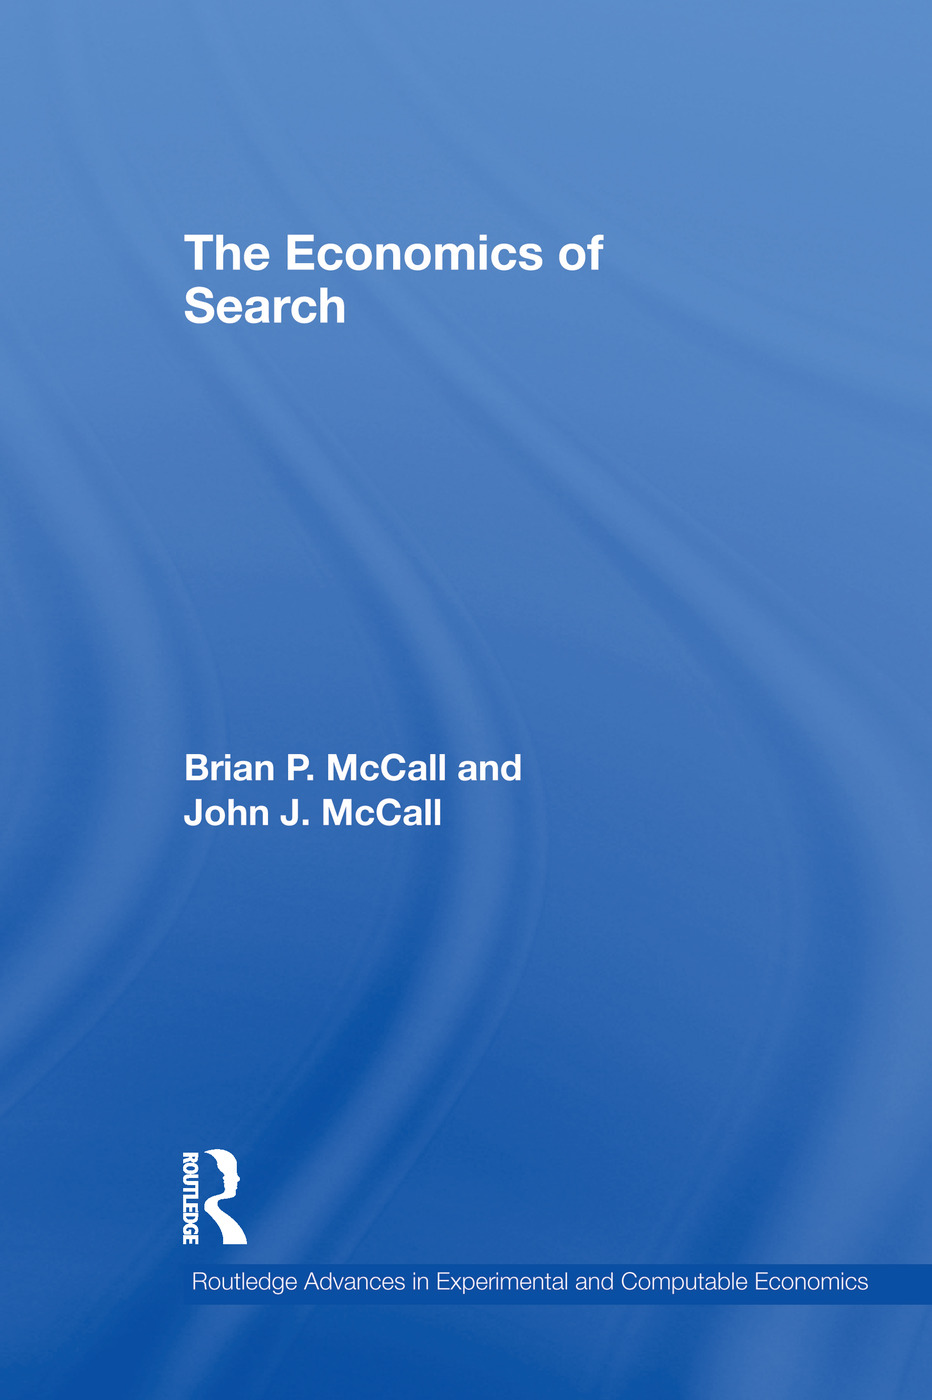 The Economics of Search book cover